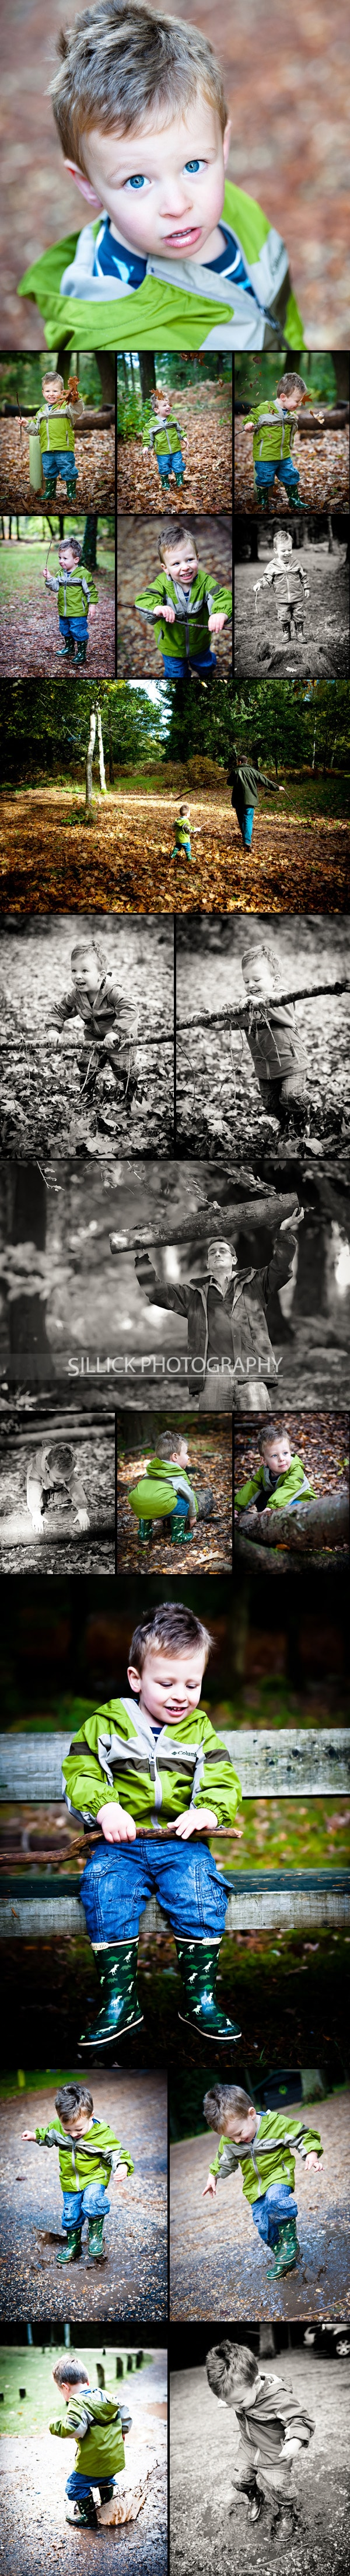 Sillick Photography, New Milton